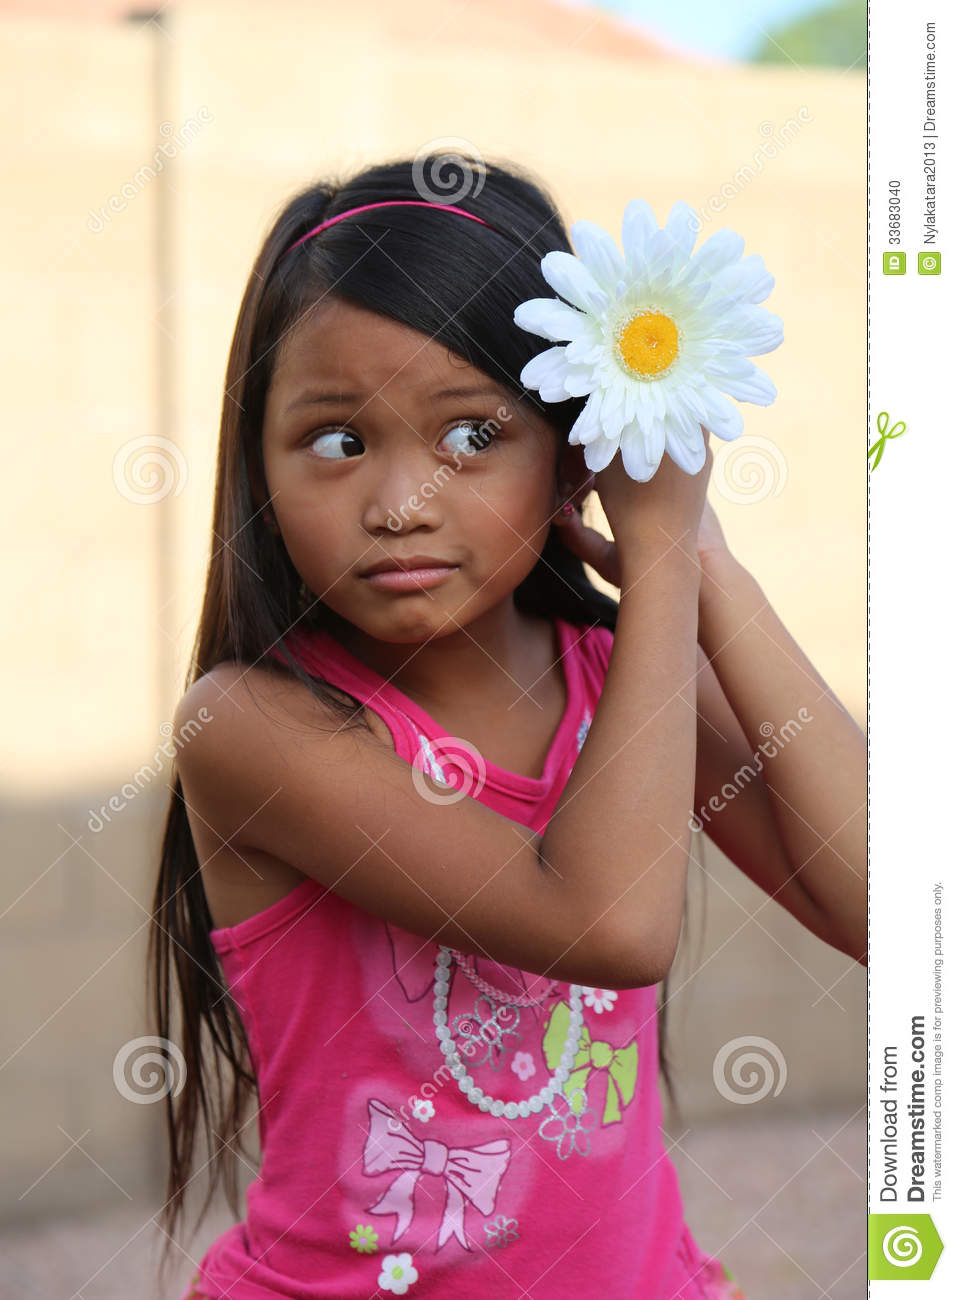 Girl Putting Daisy Flower In Hair Stock Photo Image Of Adorable